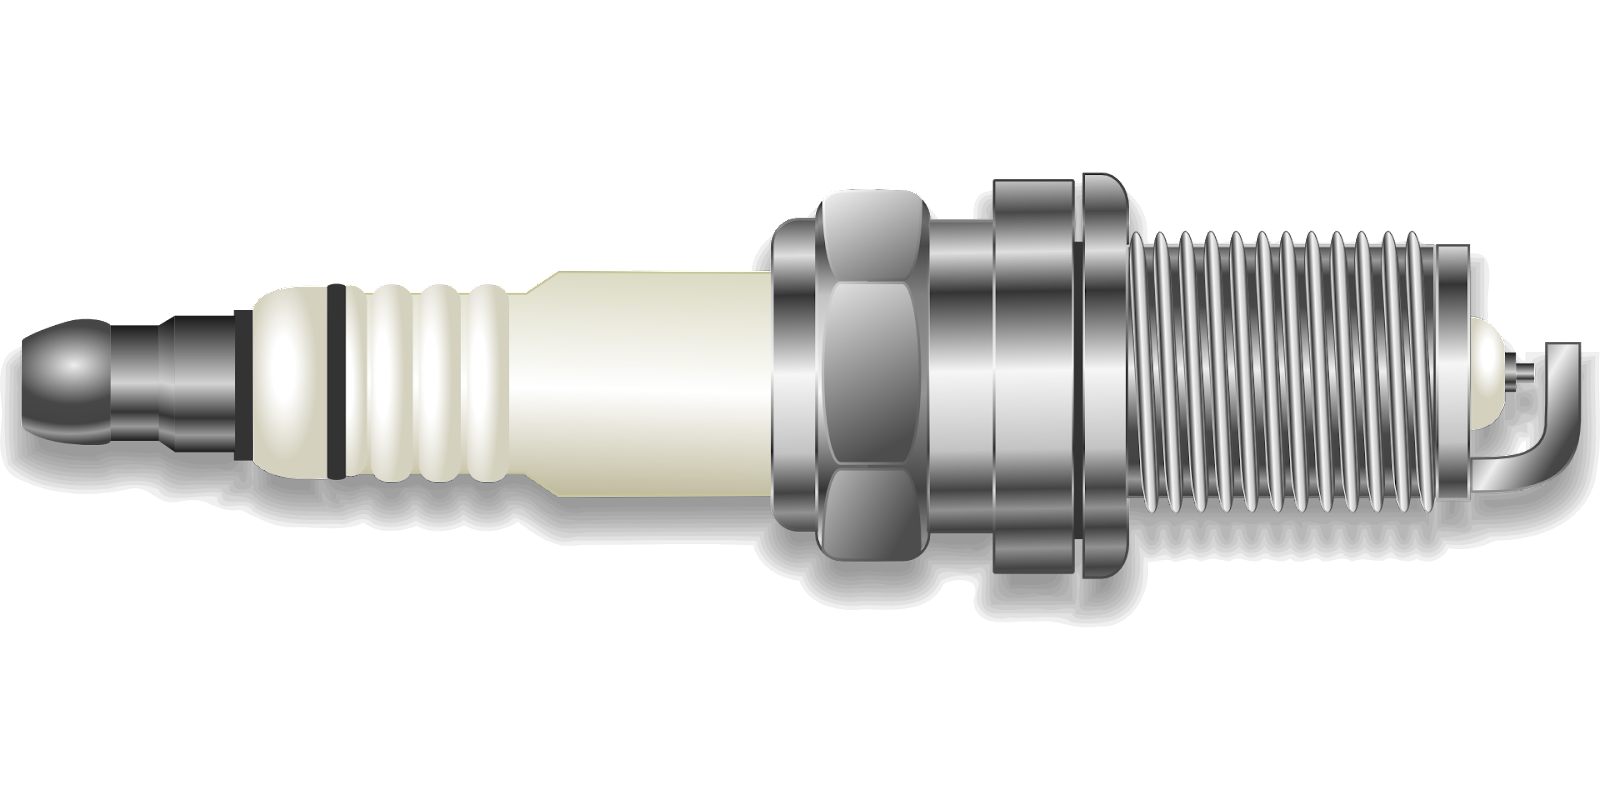 C:\Users\Ayala.Ayala-PC\Downloads\spark-plug-32083.png